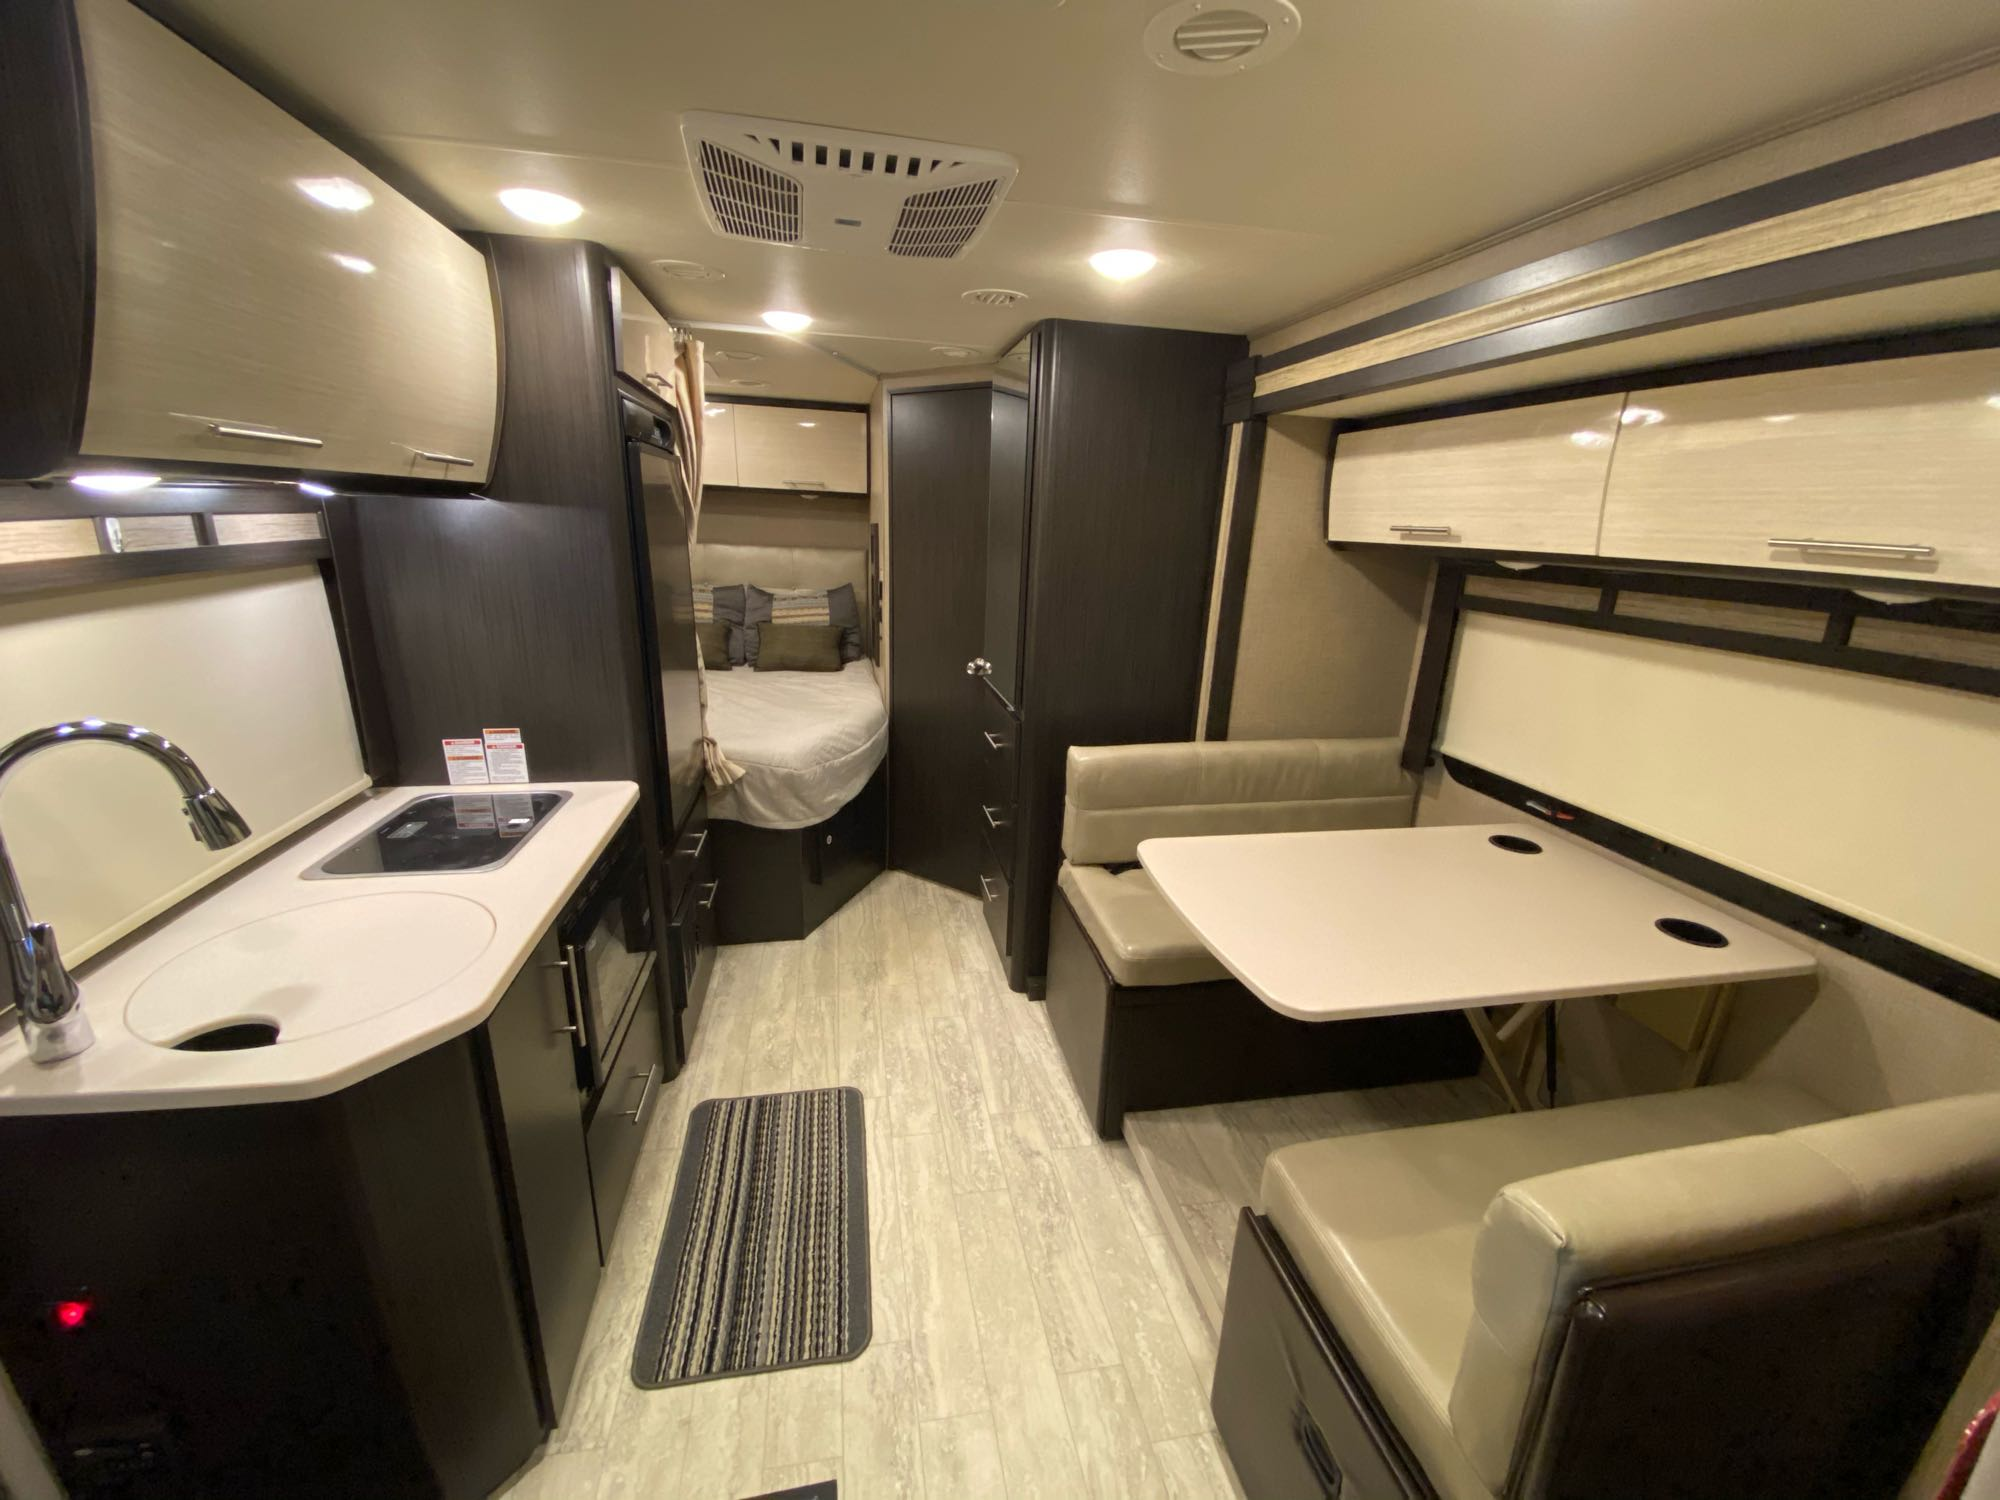 Kitchen is accessible even with slide out in position. . Thor Motor Coach Gemini 23TK 2019